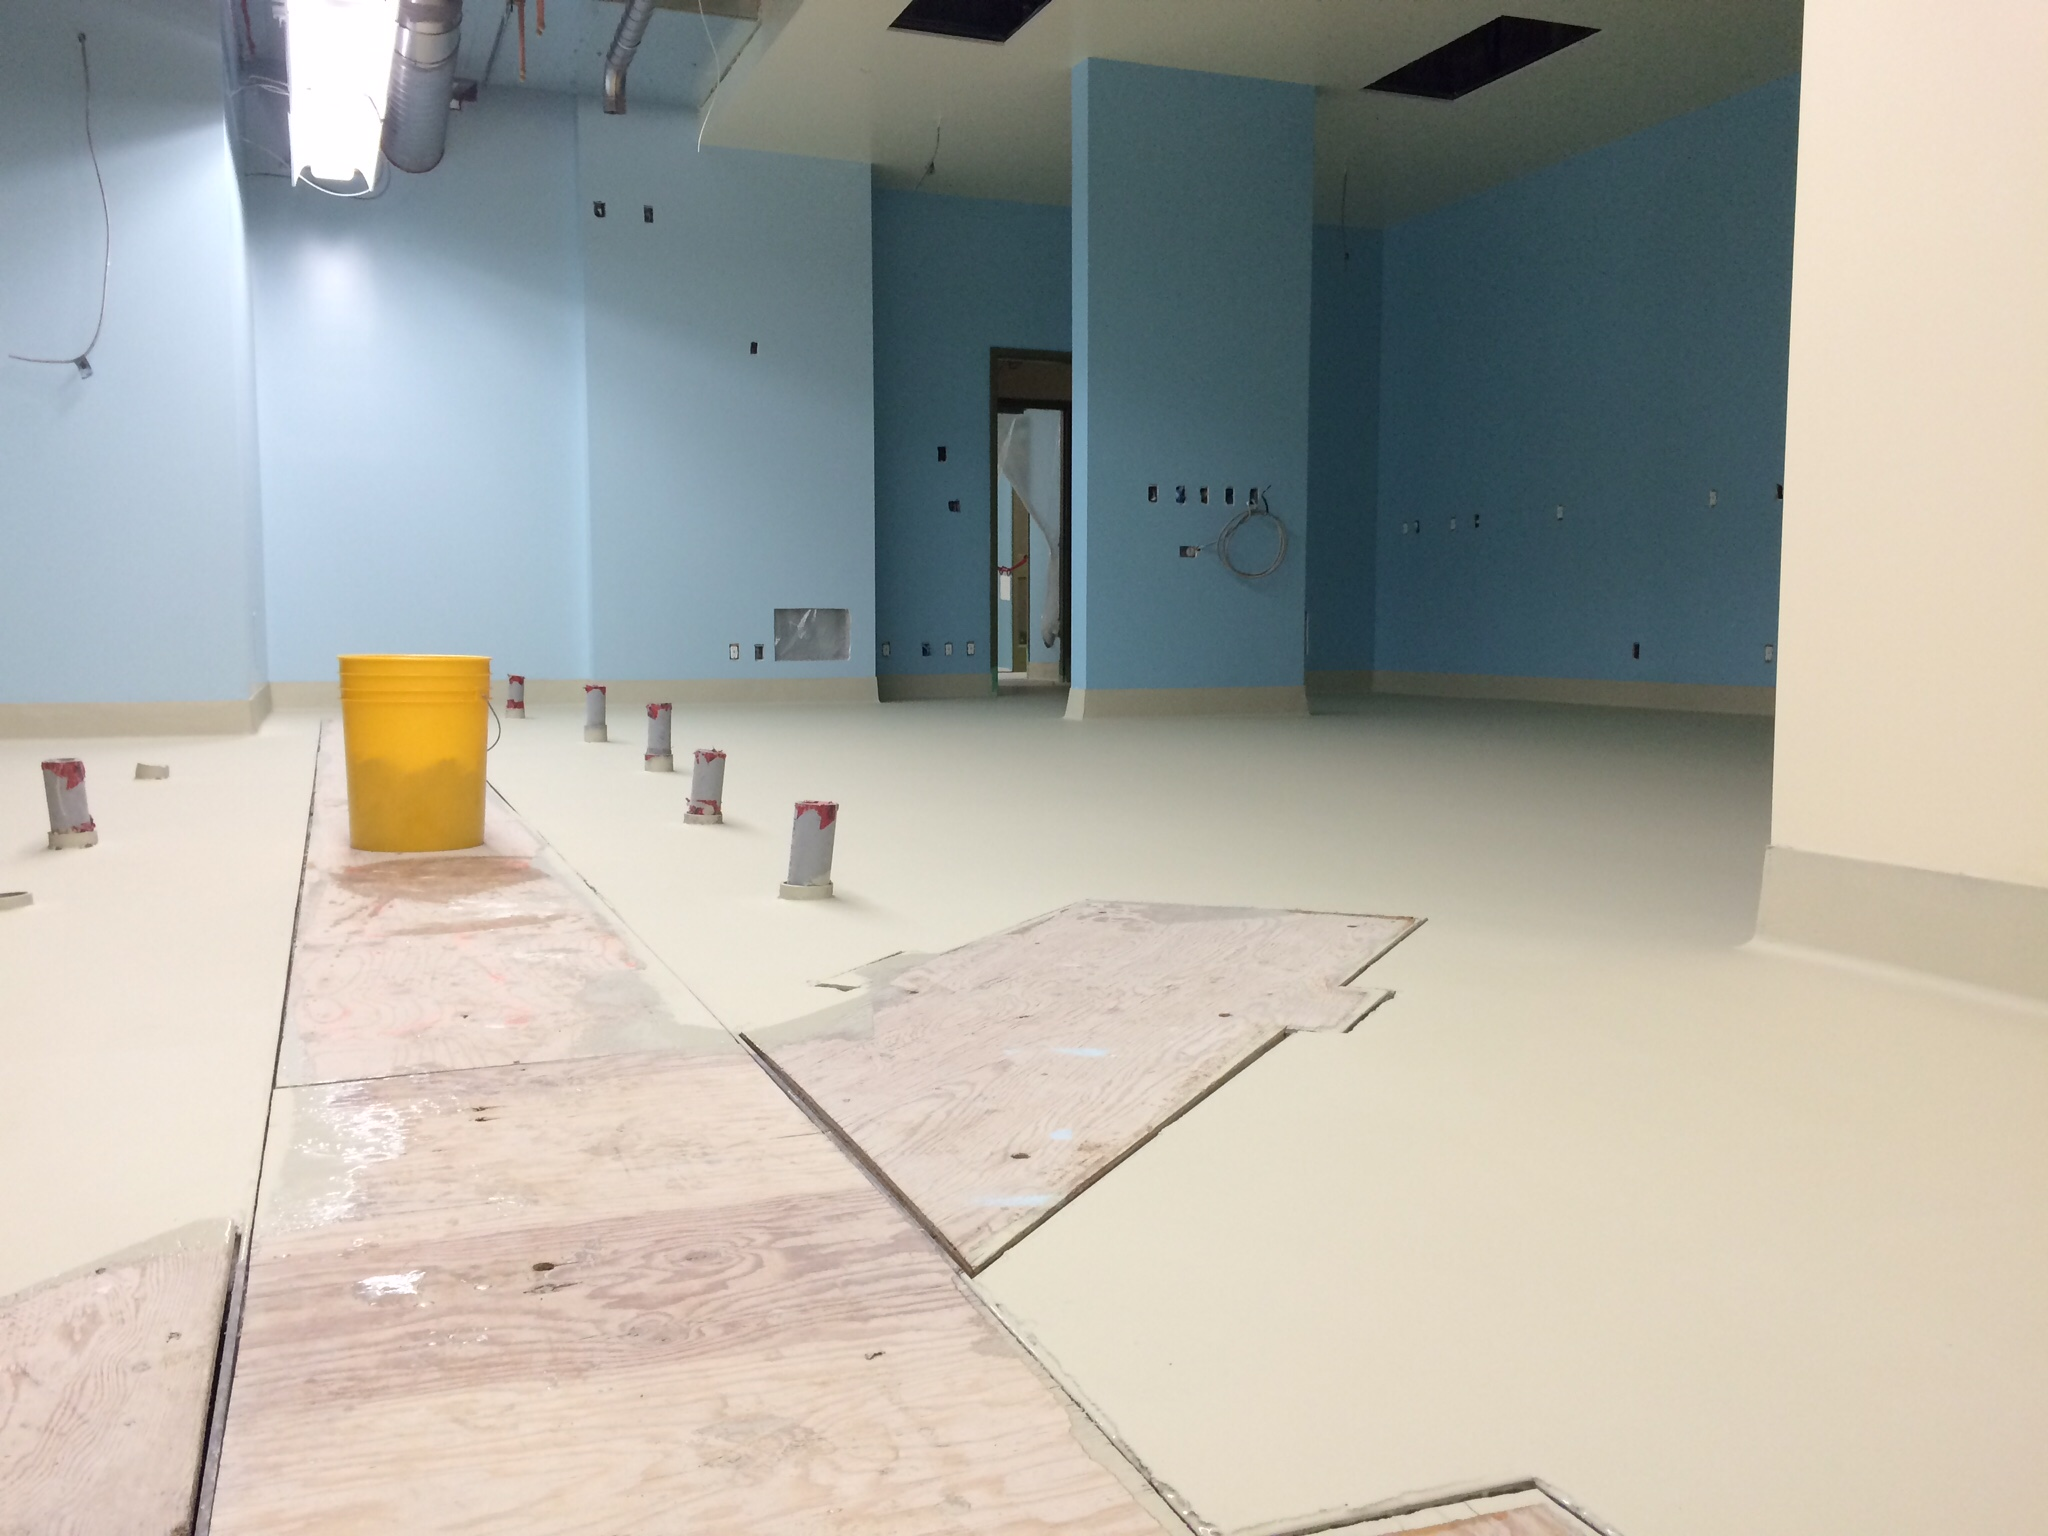 Research Lab painting